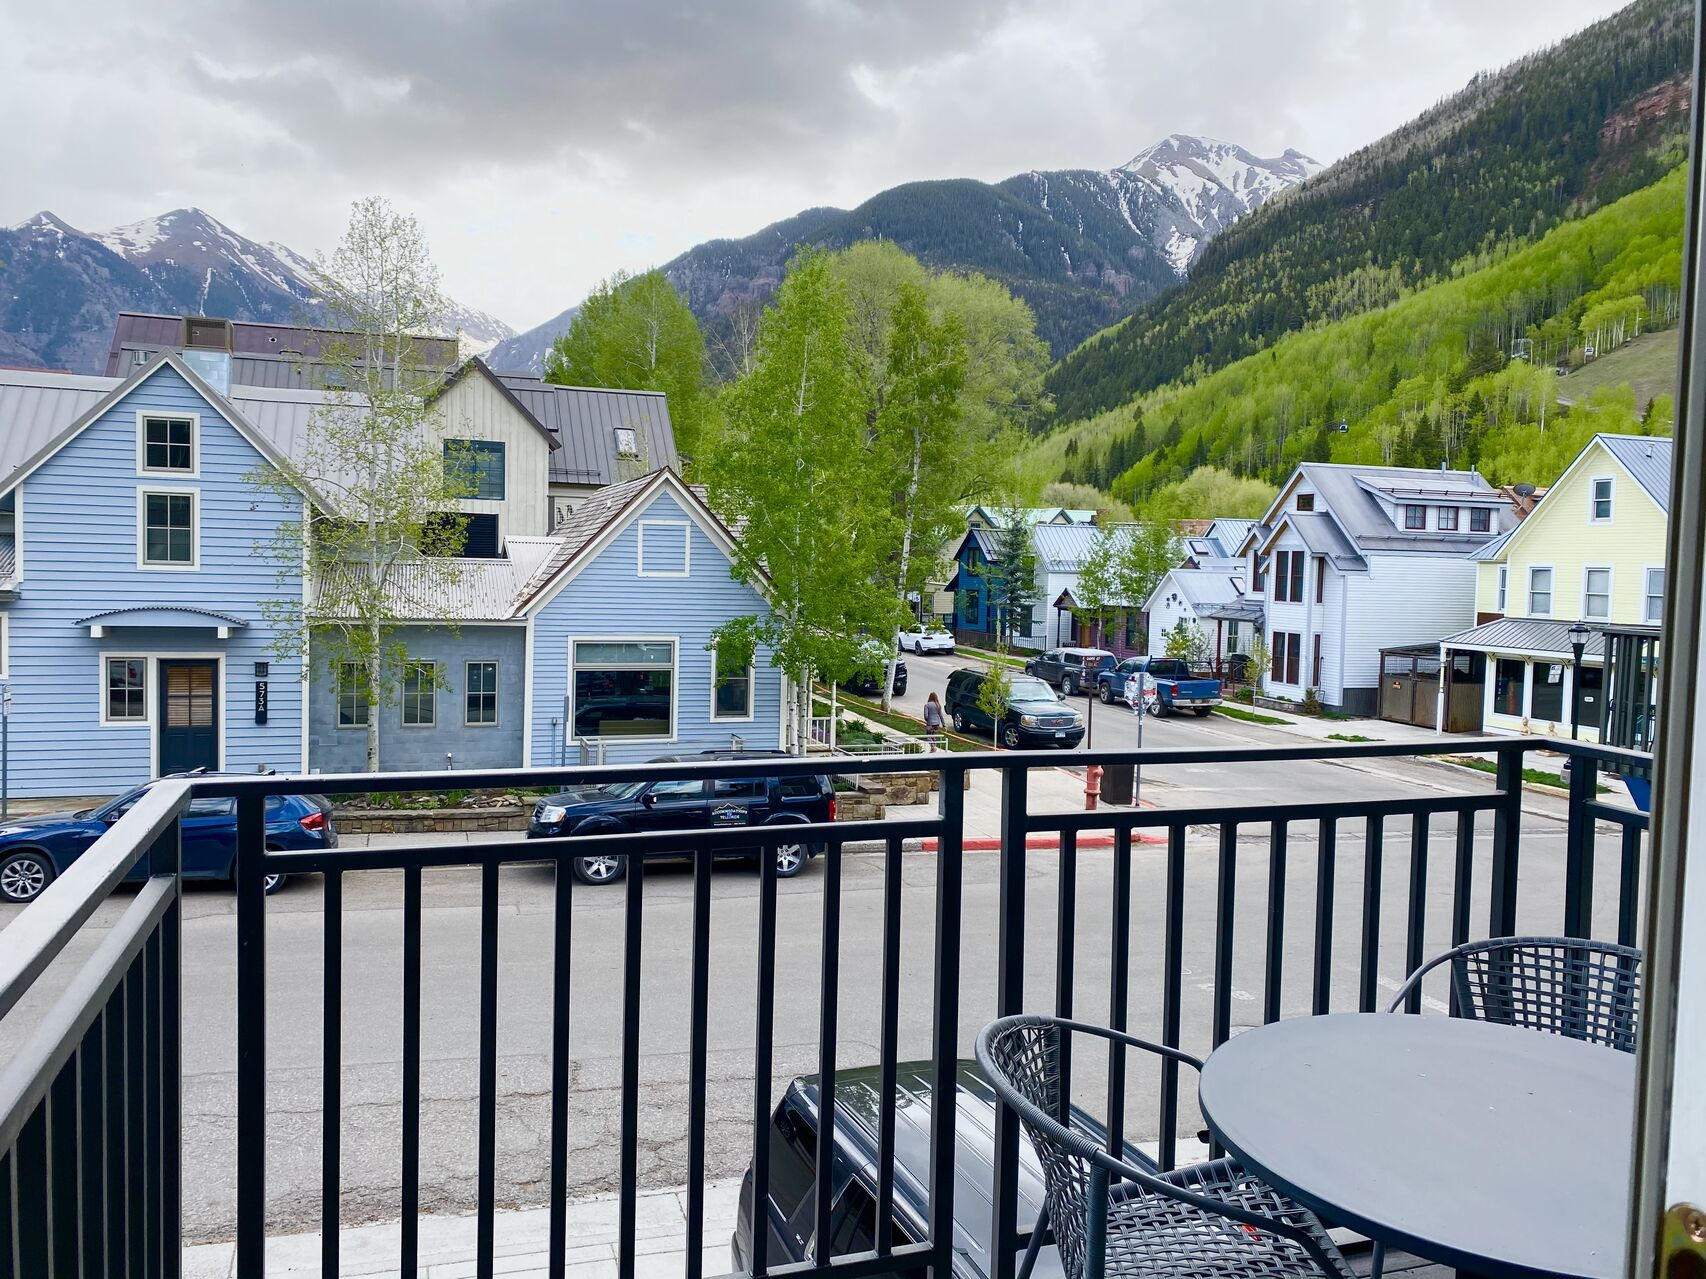 Poarch view from our Telluride condo rental